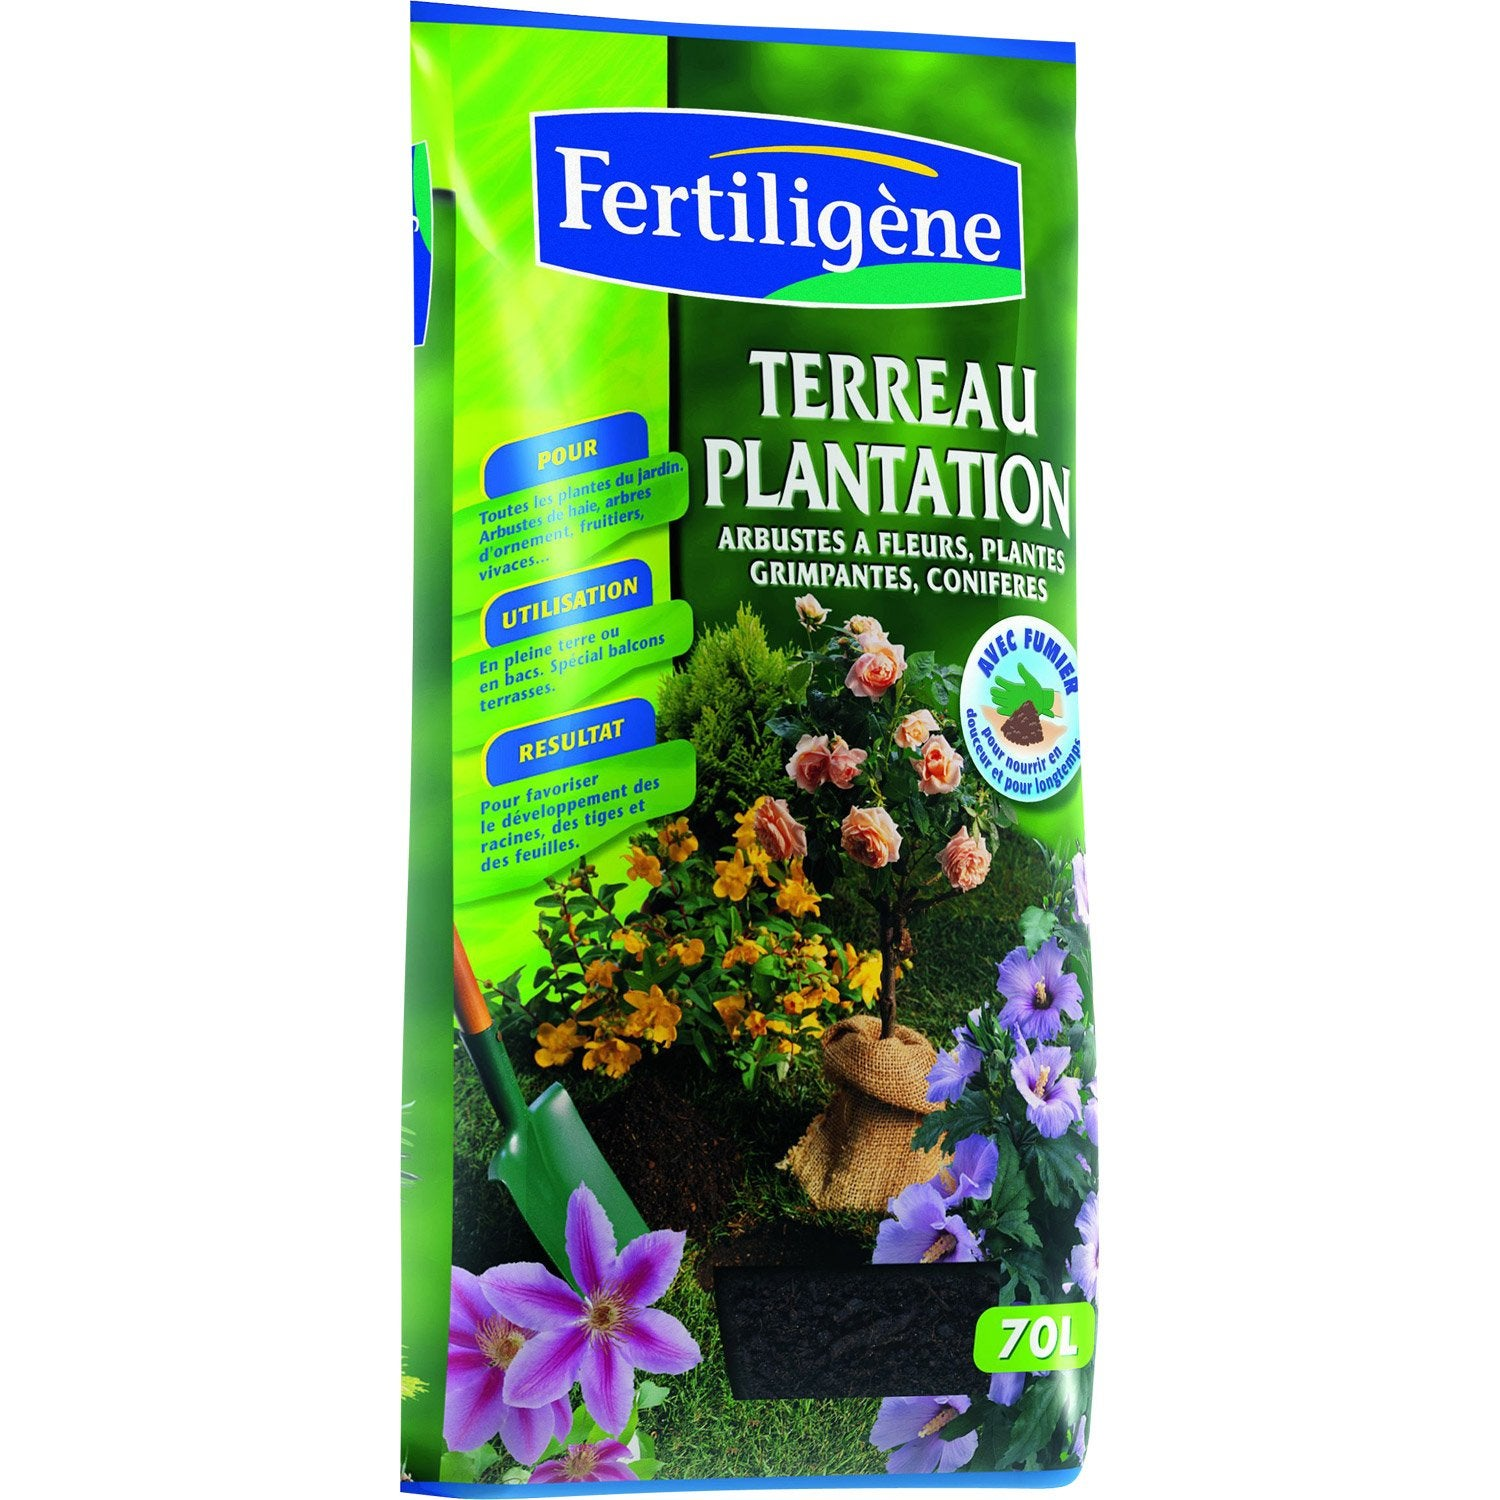 terreau plantation fertiligene 70 l leroy merlin. Black Bedroom Furniture Sets. Home Design Ideas